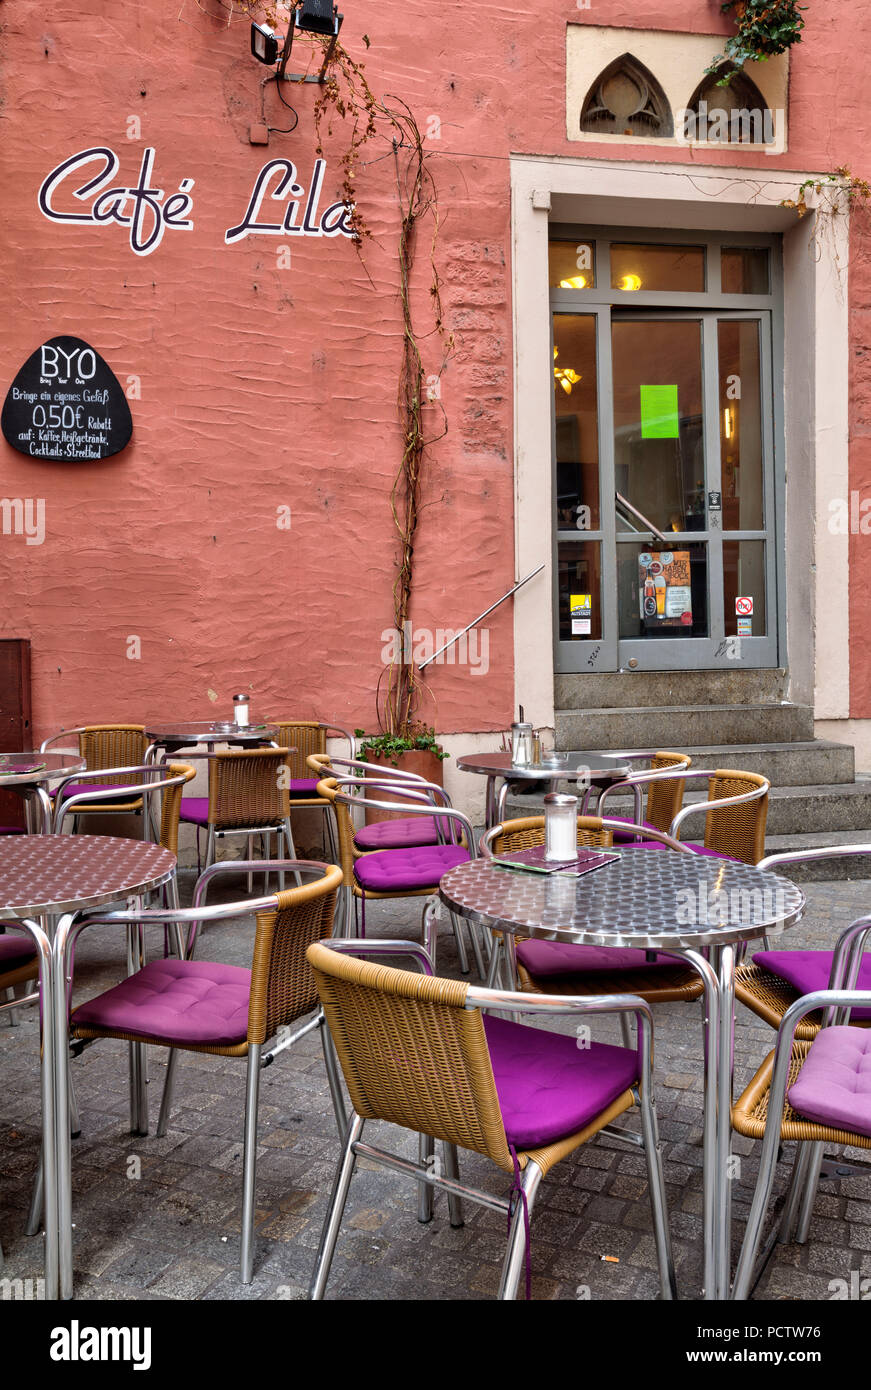 Cafe Lila, Facade, Tables, Chairs, old town, Autumn, Historic, Regensburg, Upper Palatinate, Bavaria, Germany, Europe - Stock Image